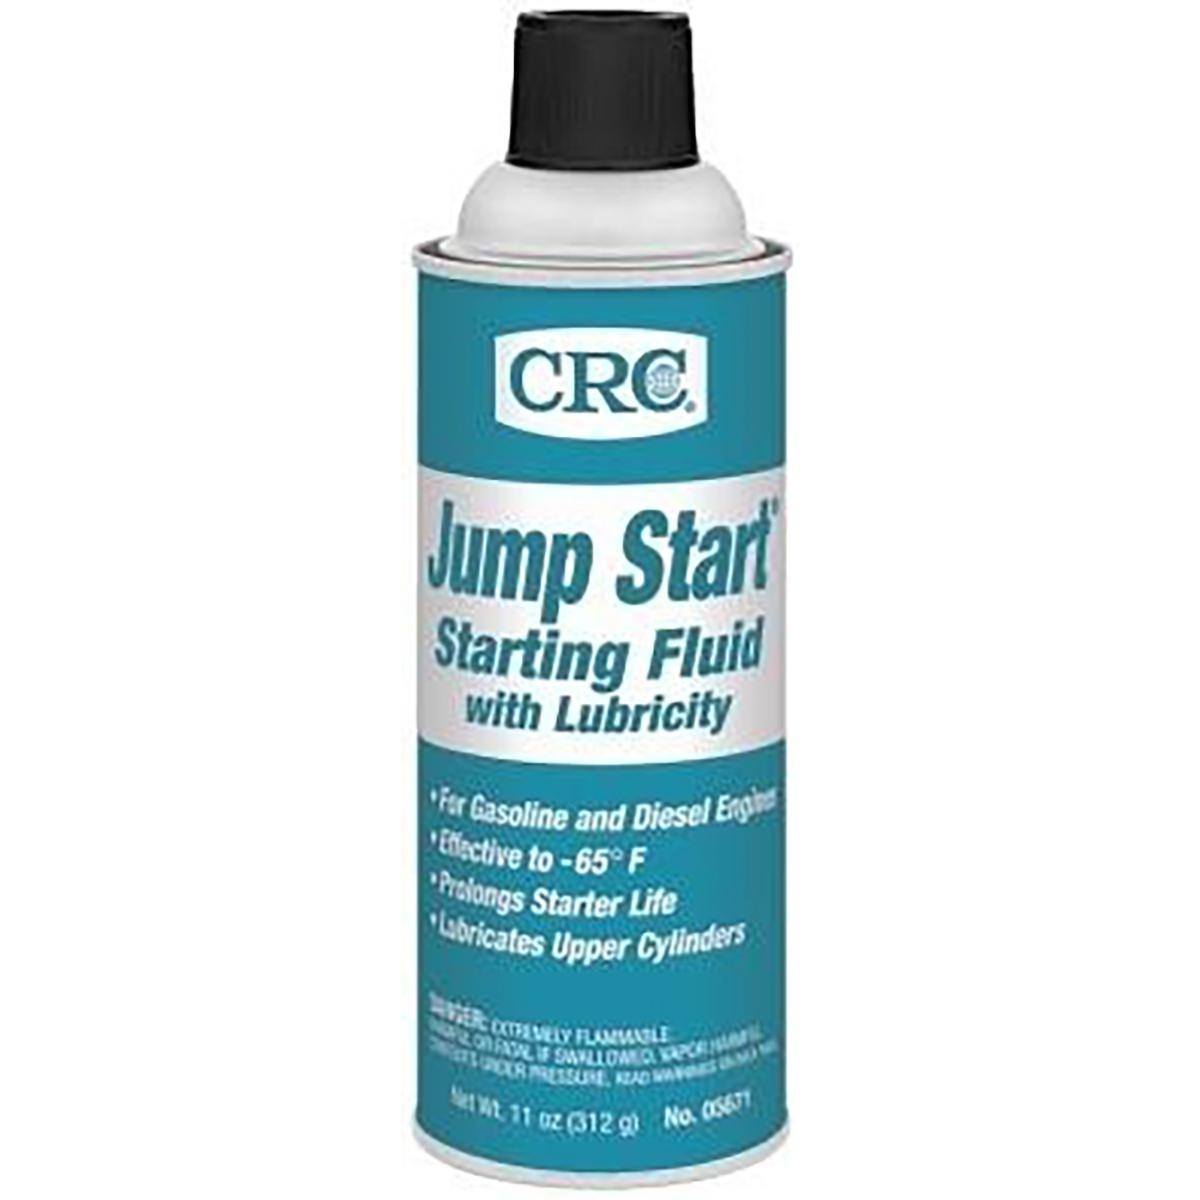 Jump Start® Starting Fluid with Lubricity, 11 Wt Oz